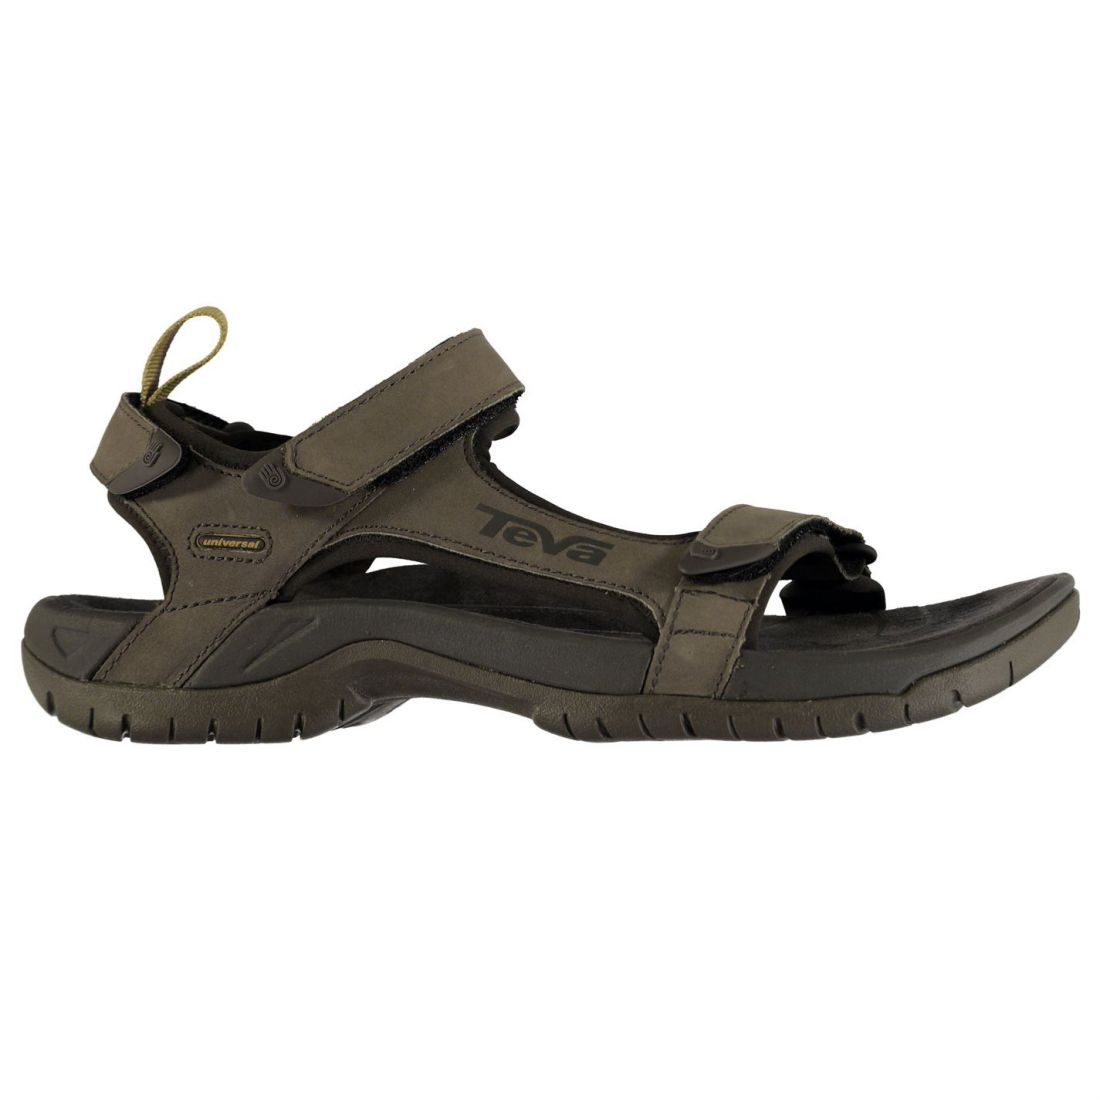 3425c5b530e1 Teva Tanza Leather Sandals Mens Gents Strap Touch and Close Summer ...